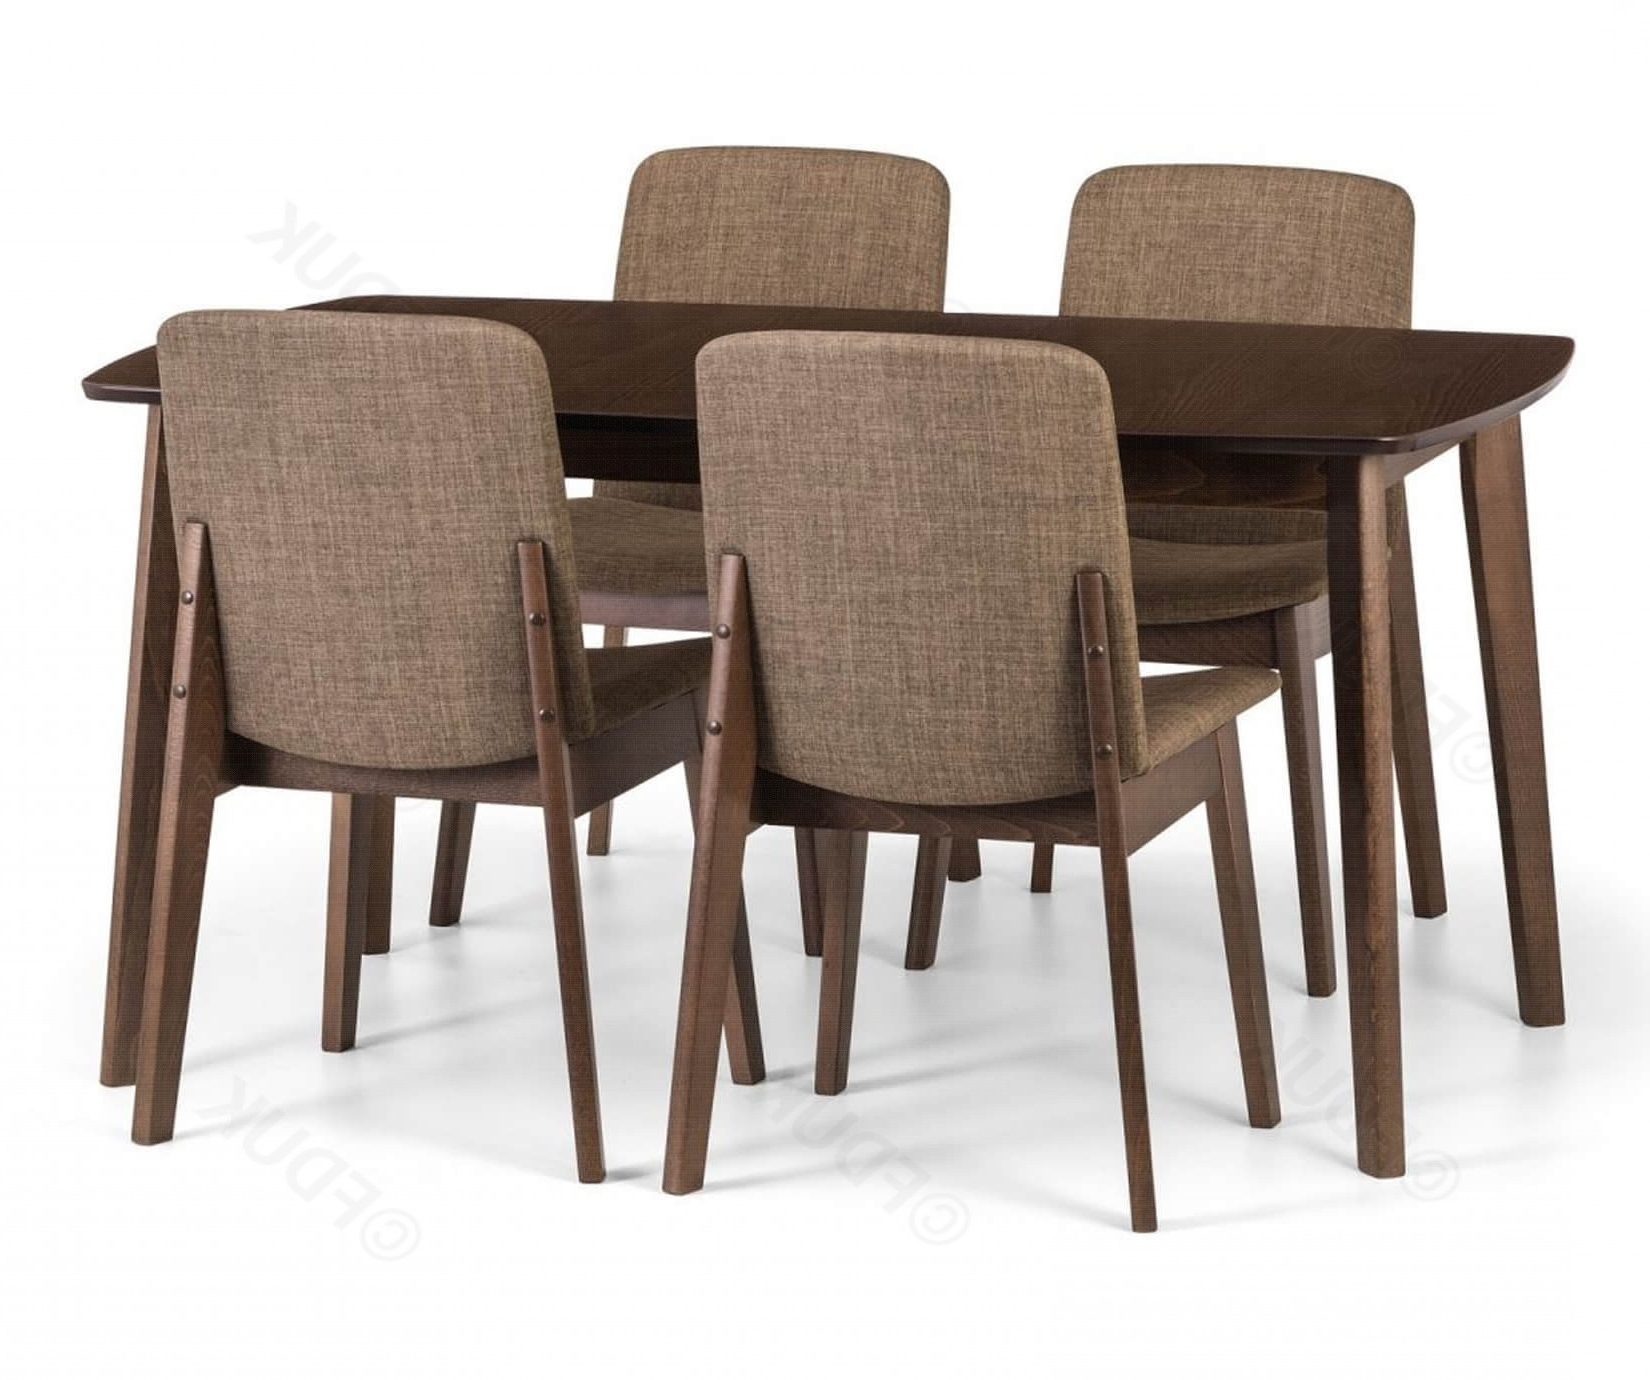 Kensington Extending Dining Table With 4 Chairs Throughout Trendy Extending Dining Tables And 4 Chairs (View 13 of 25)